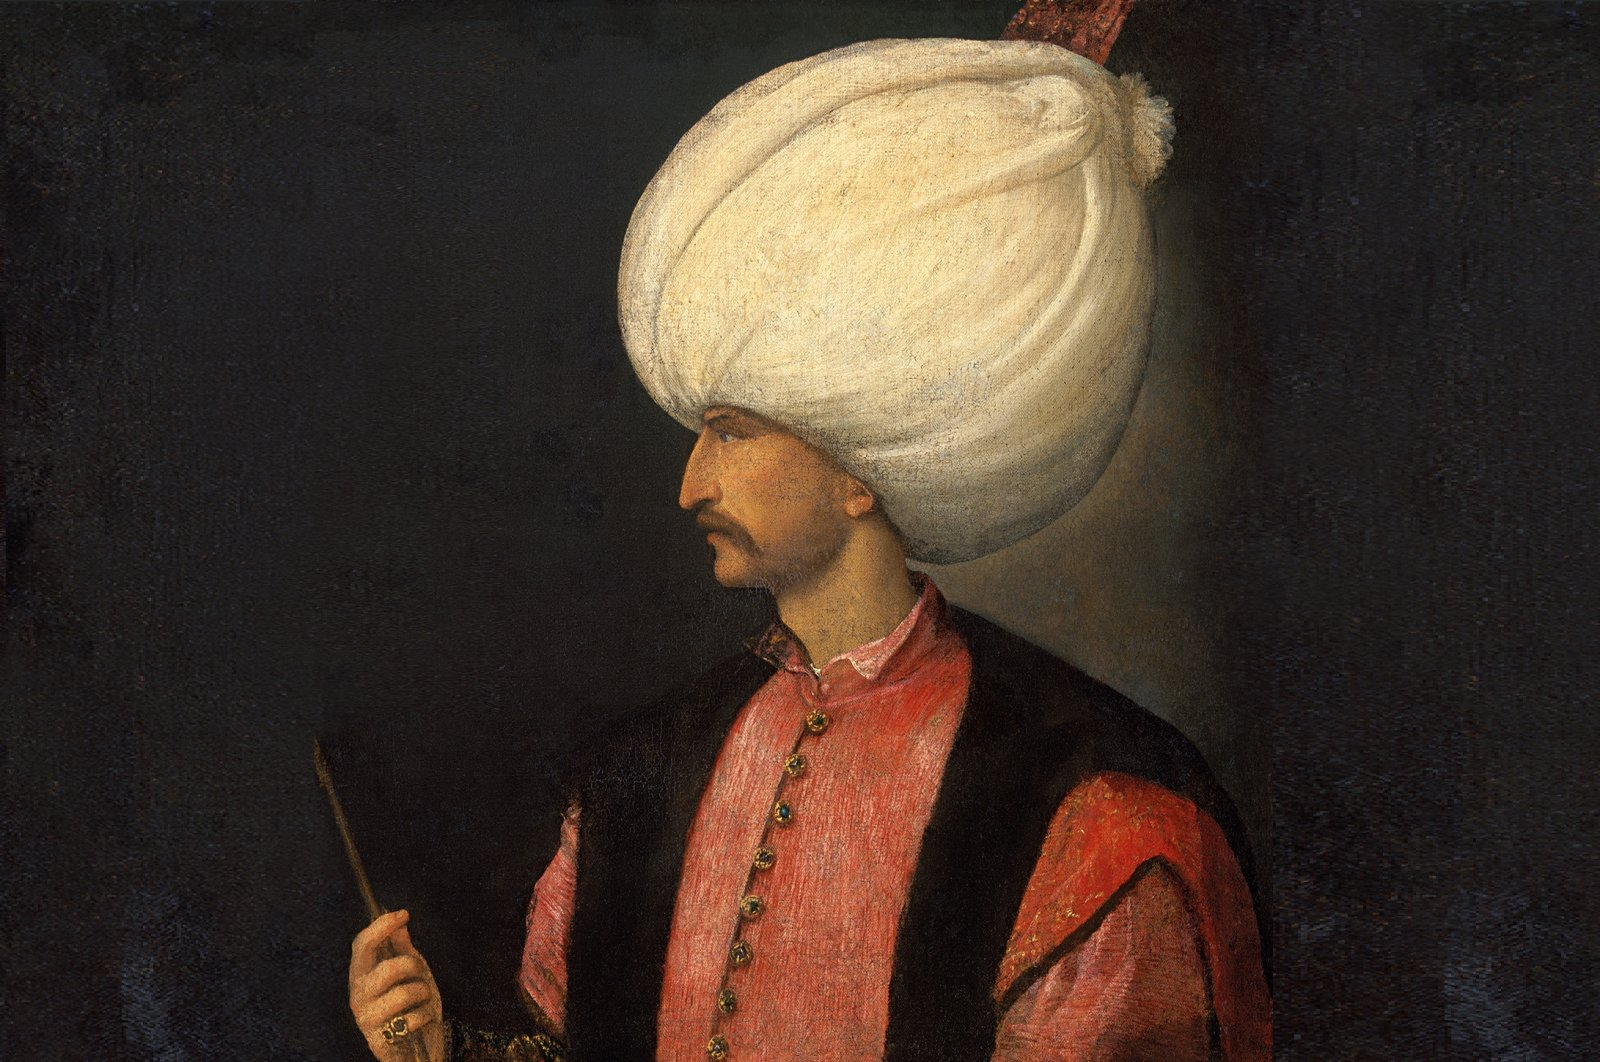 The portrait of Suleiman the Magnificent attributed to Italian painter Titian, oil on canvas, 99 by 85 centimeters, selected from Kunsthistorisches Museum, Vienna, Austria. (Courtesy of SSM)